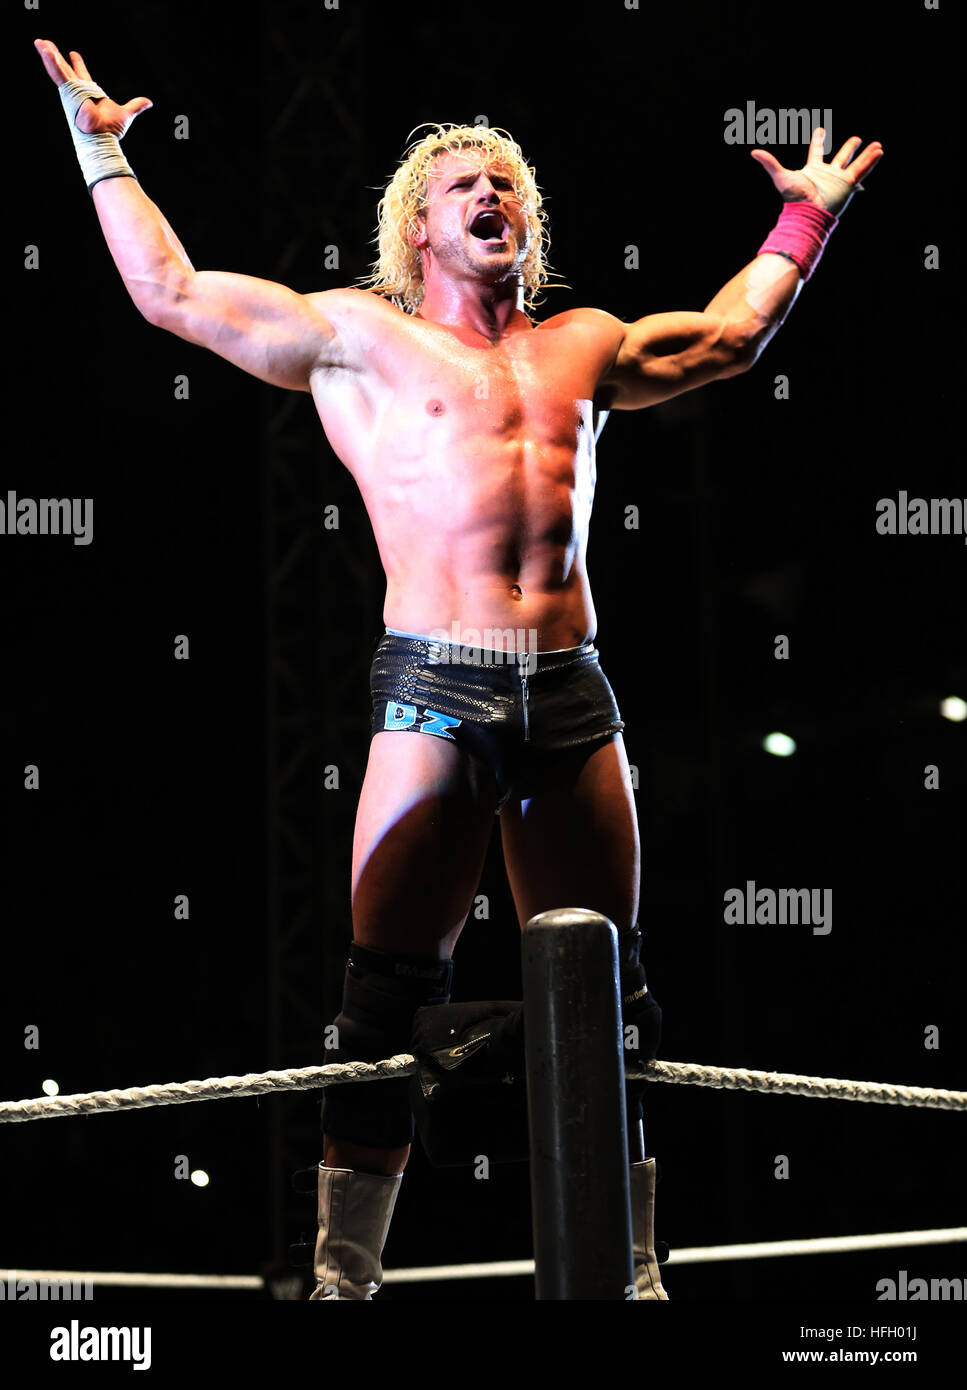 DURBAN, SOUTH AFRICA - AUGUST 01: Dolph Ziggler during the WWE World Tour 2013 at Westridge Park Stadium on August - Stock Image